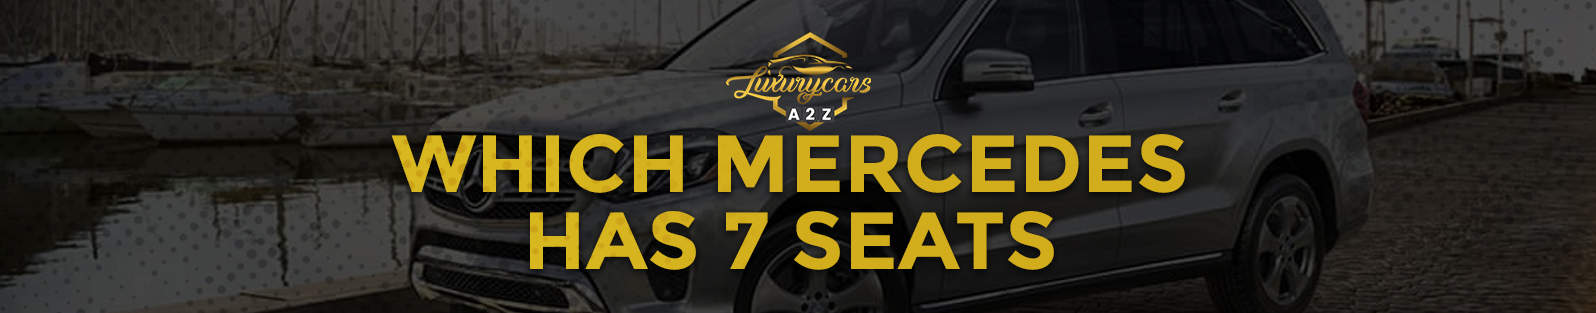 Which Mercedes SUV is a 7-seater?